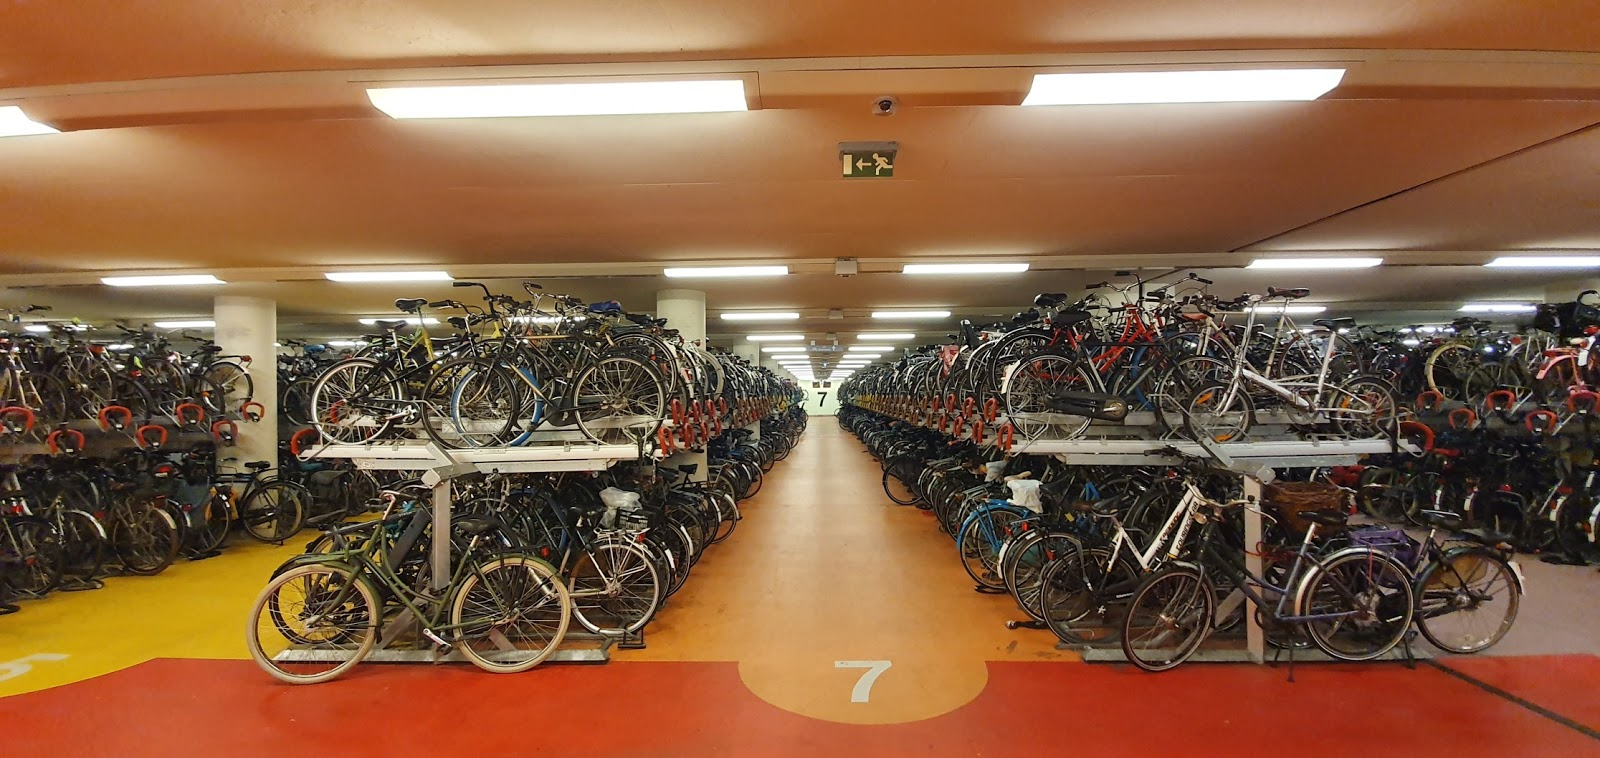 Storage space at Centraal Station for 5,500 bicycles